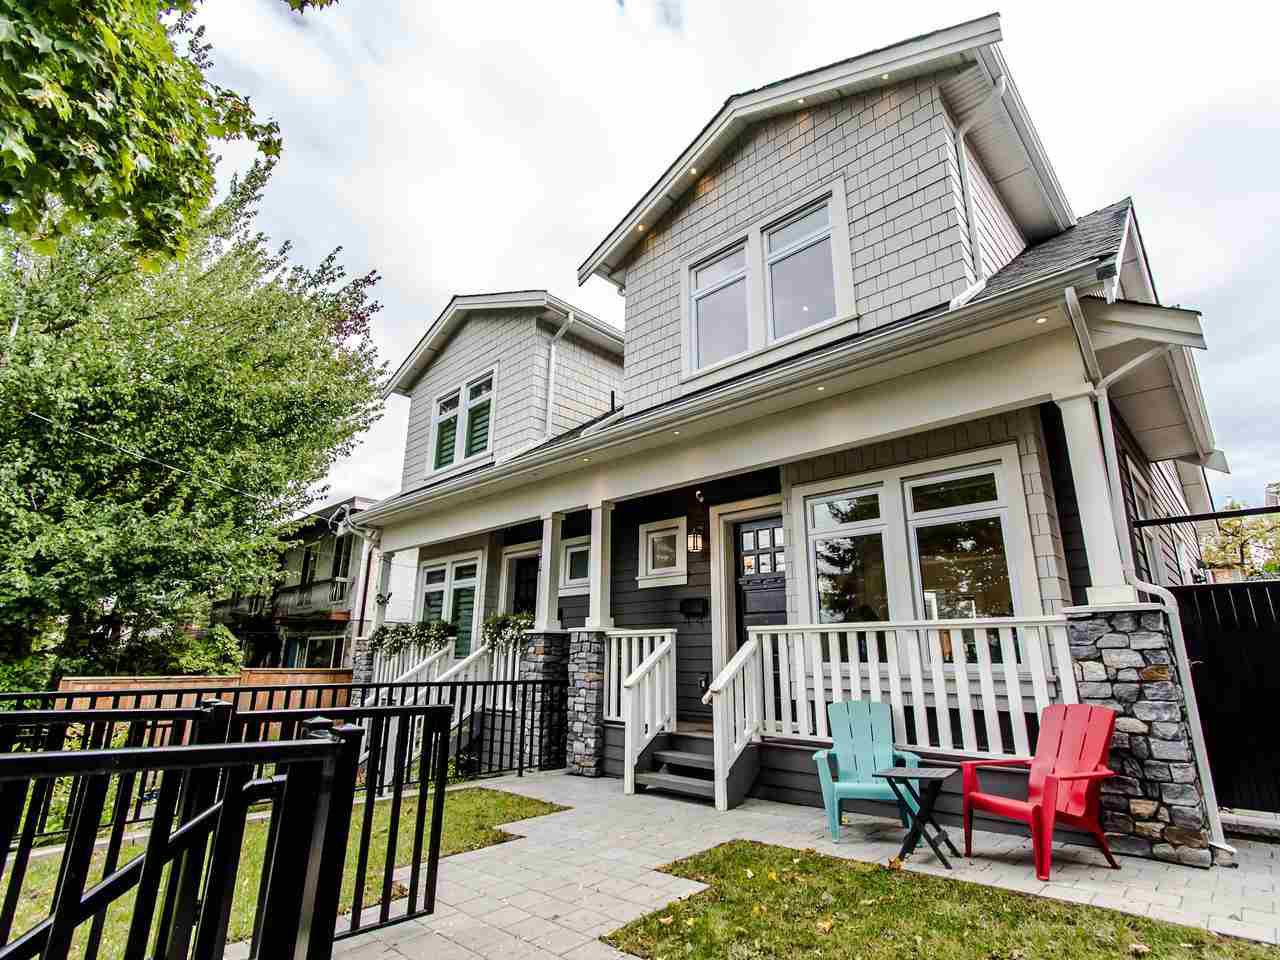 Main Photo: 1326 E 15TH Avenue in Vancouver: Grandview Woodland House 1/2 Duplex for sale (Vancouver East)  : MLS®# R2410220